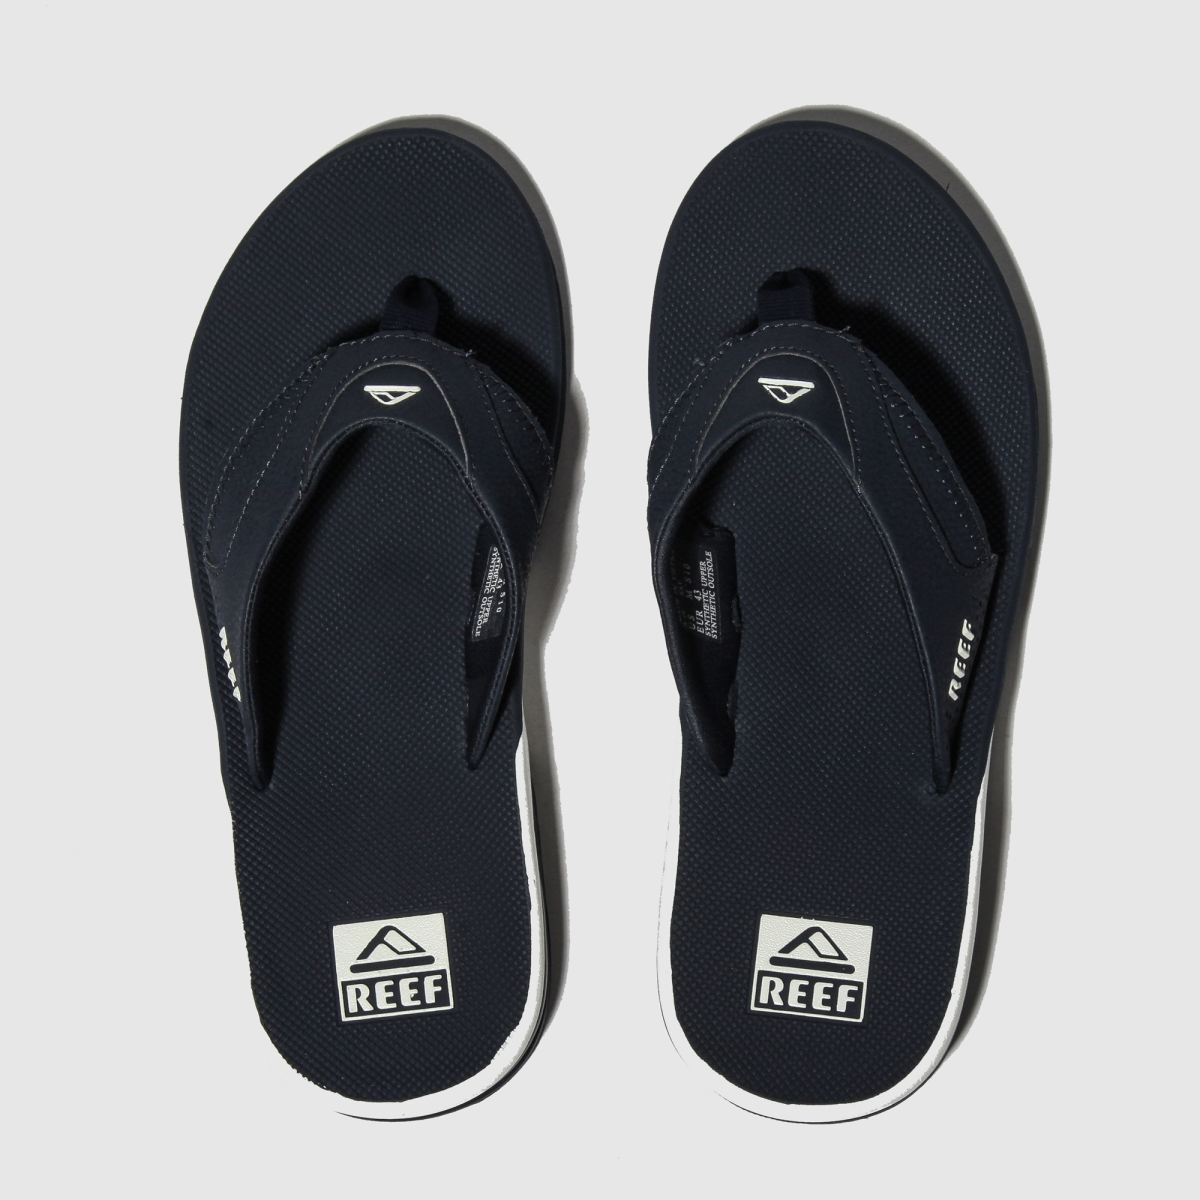 Reef Reef Navy & White Fanning Sandals